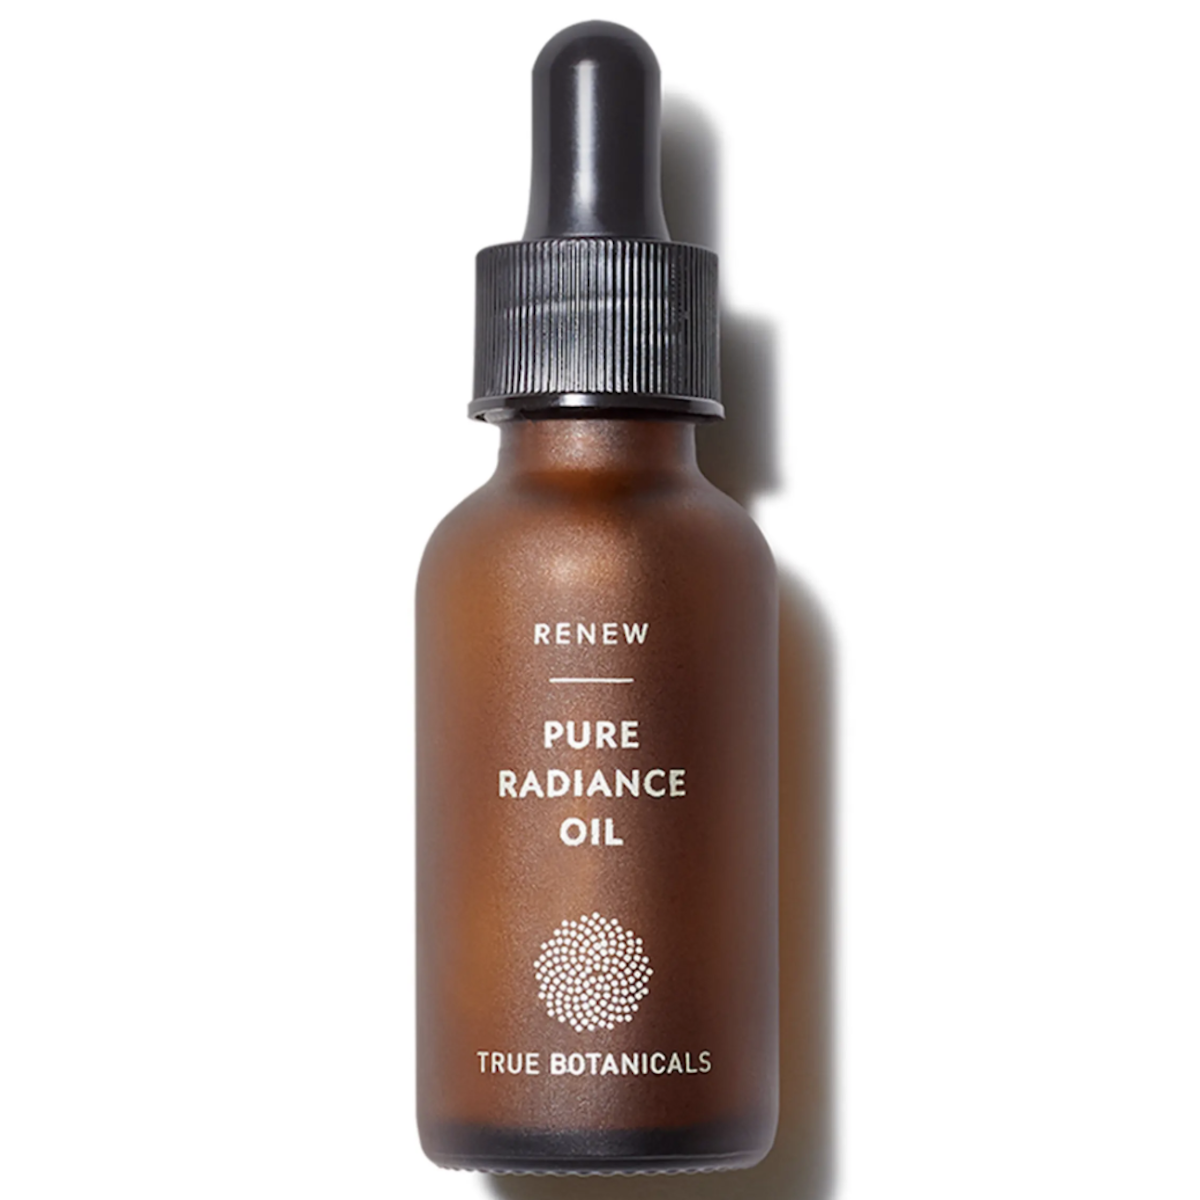 True Botanicals Pure Radiance Oil with dropper